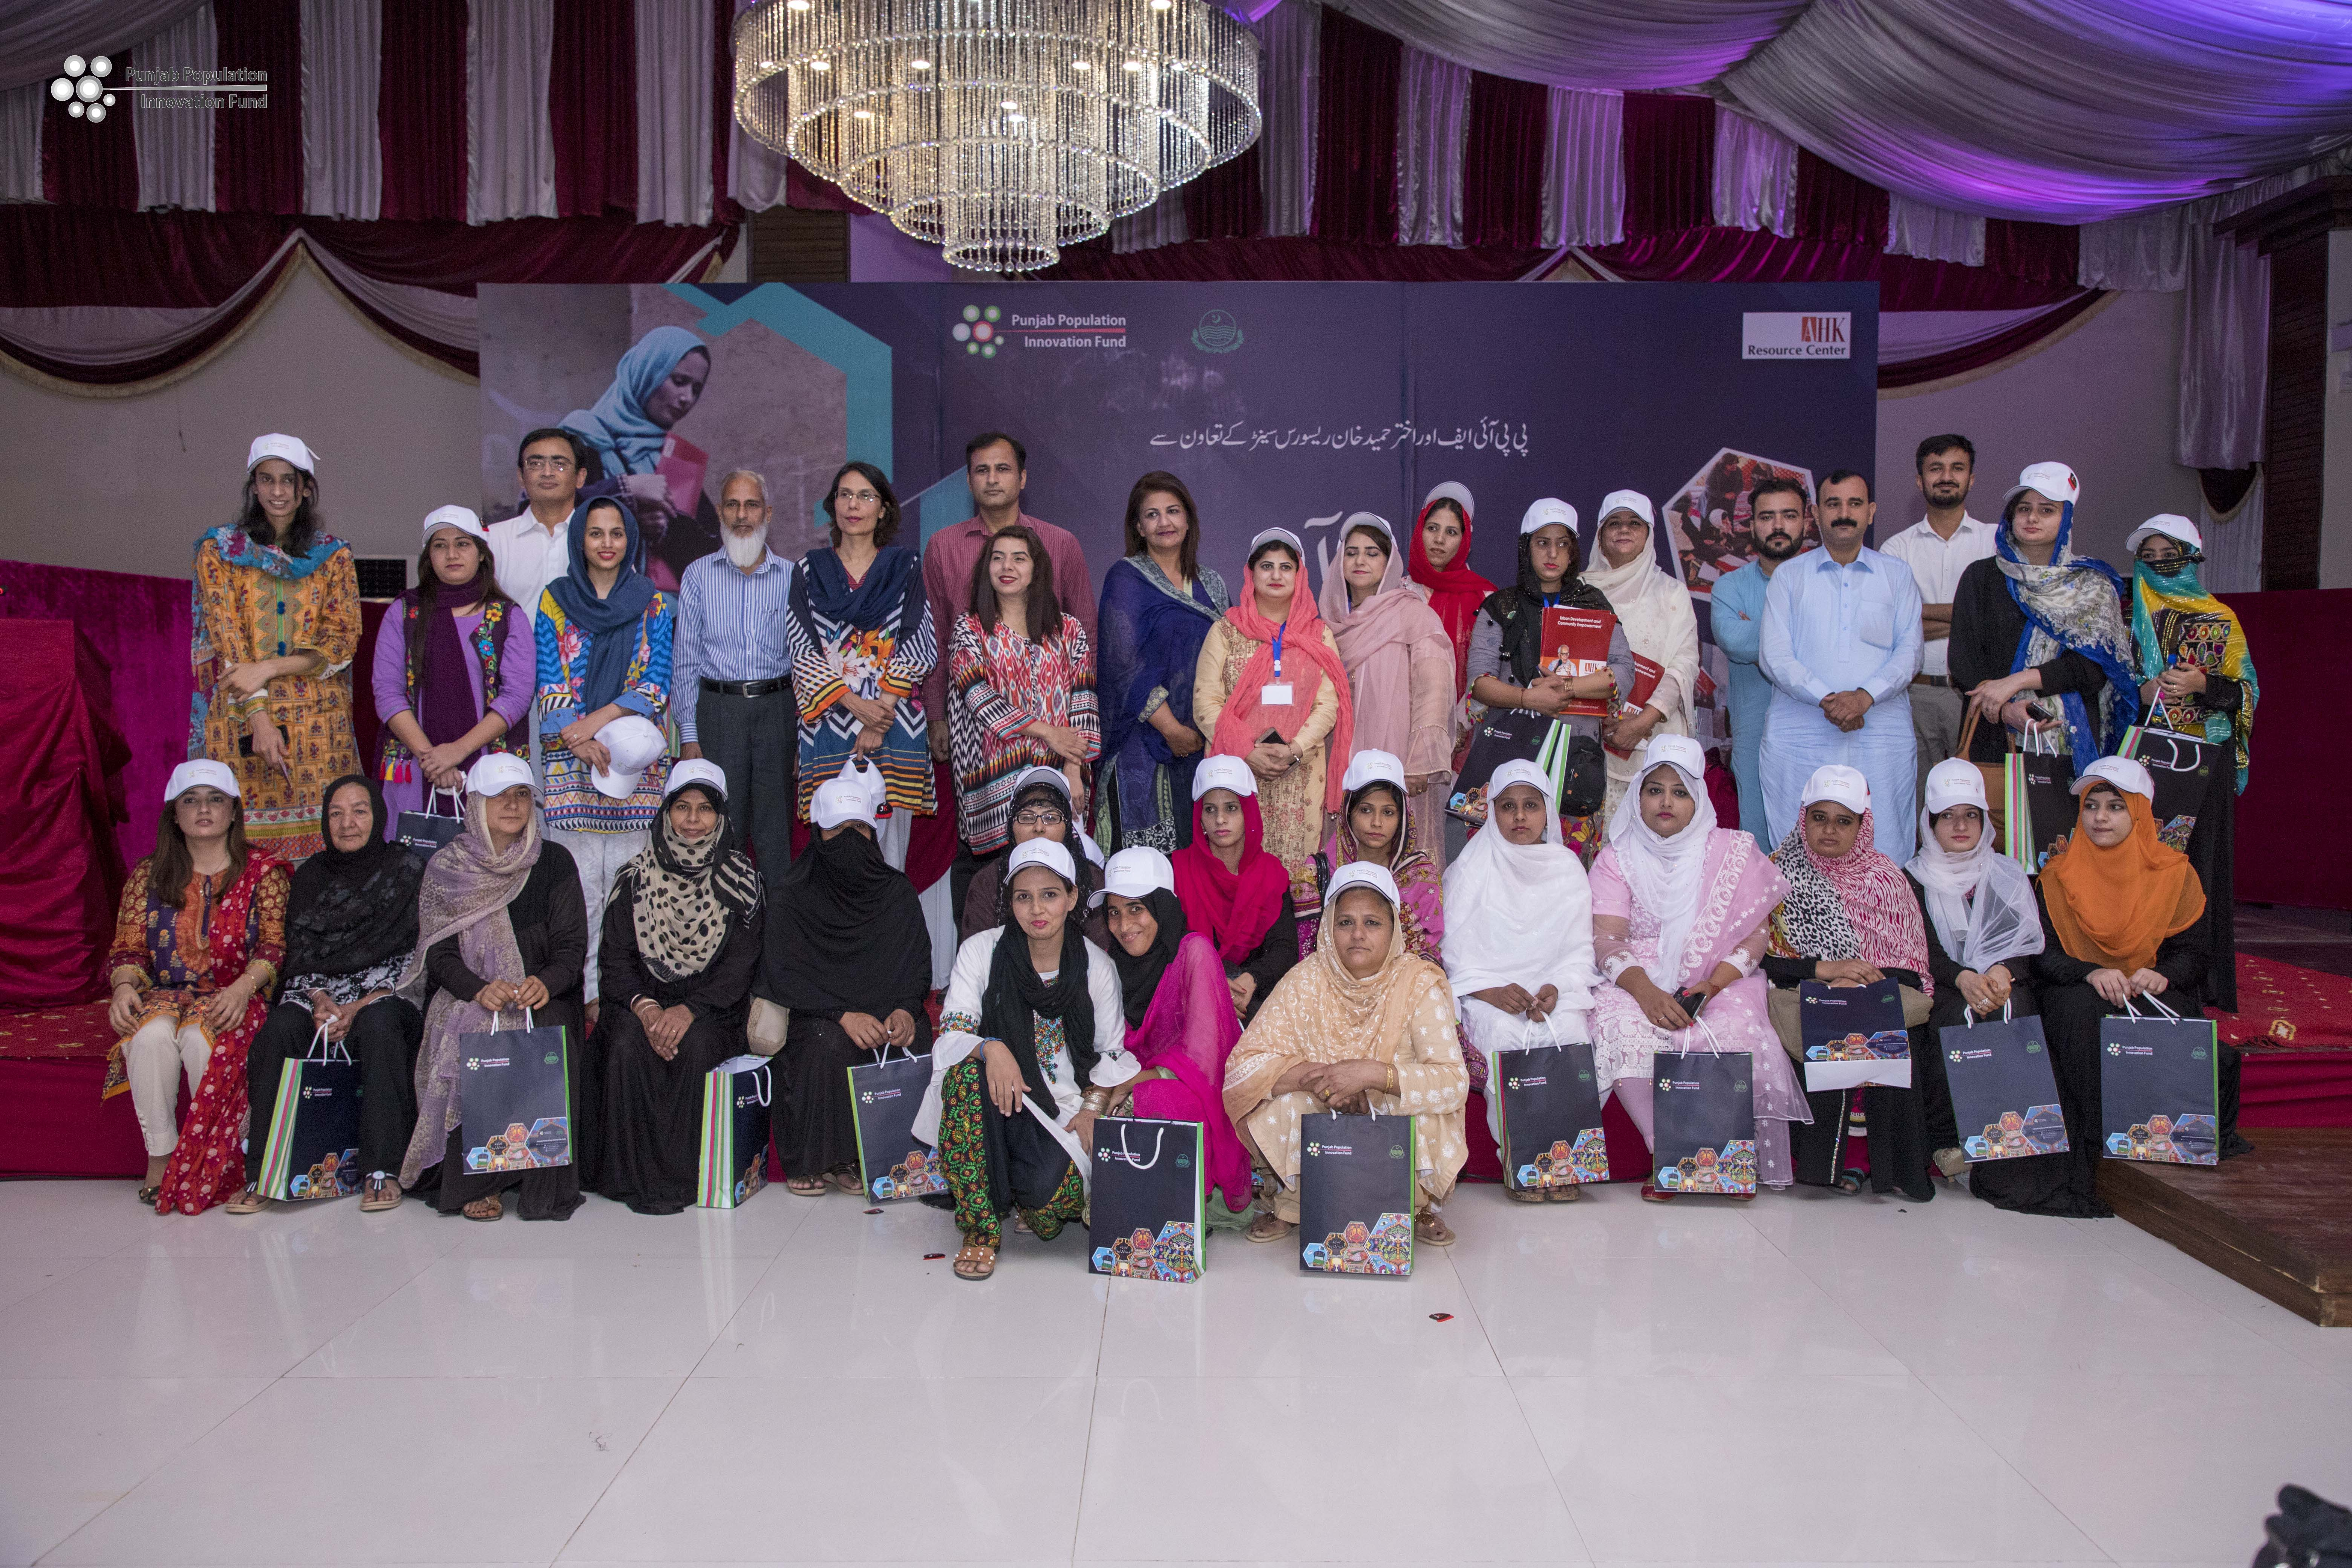 PPIF Events - Punjab Population Innovation Fund (PPIF)